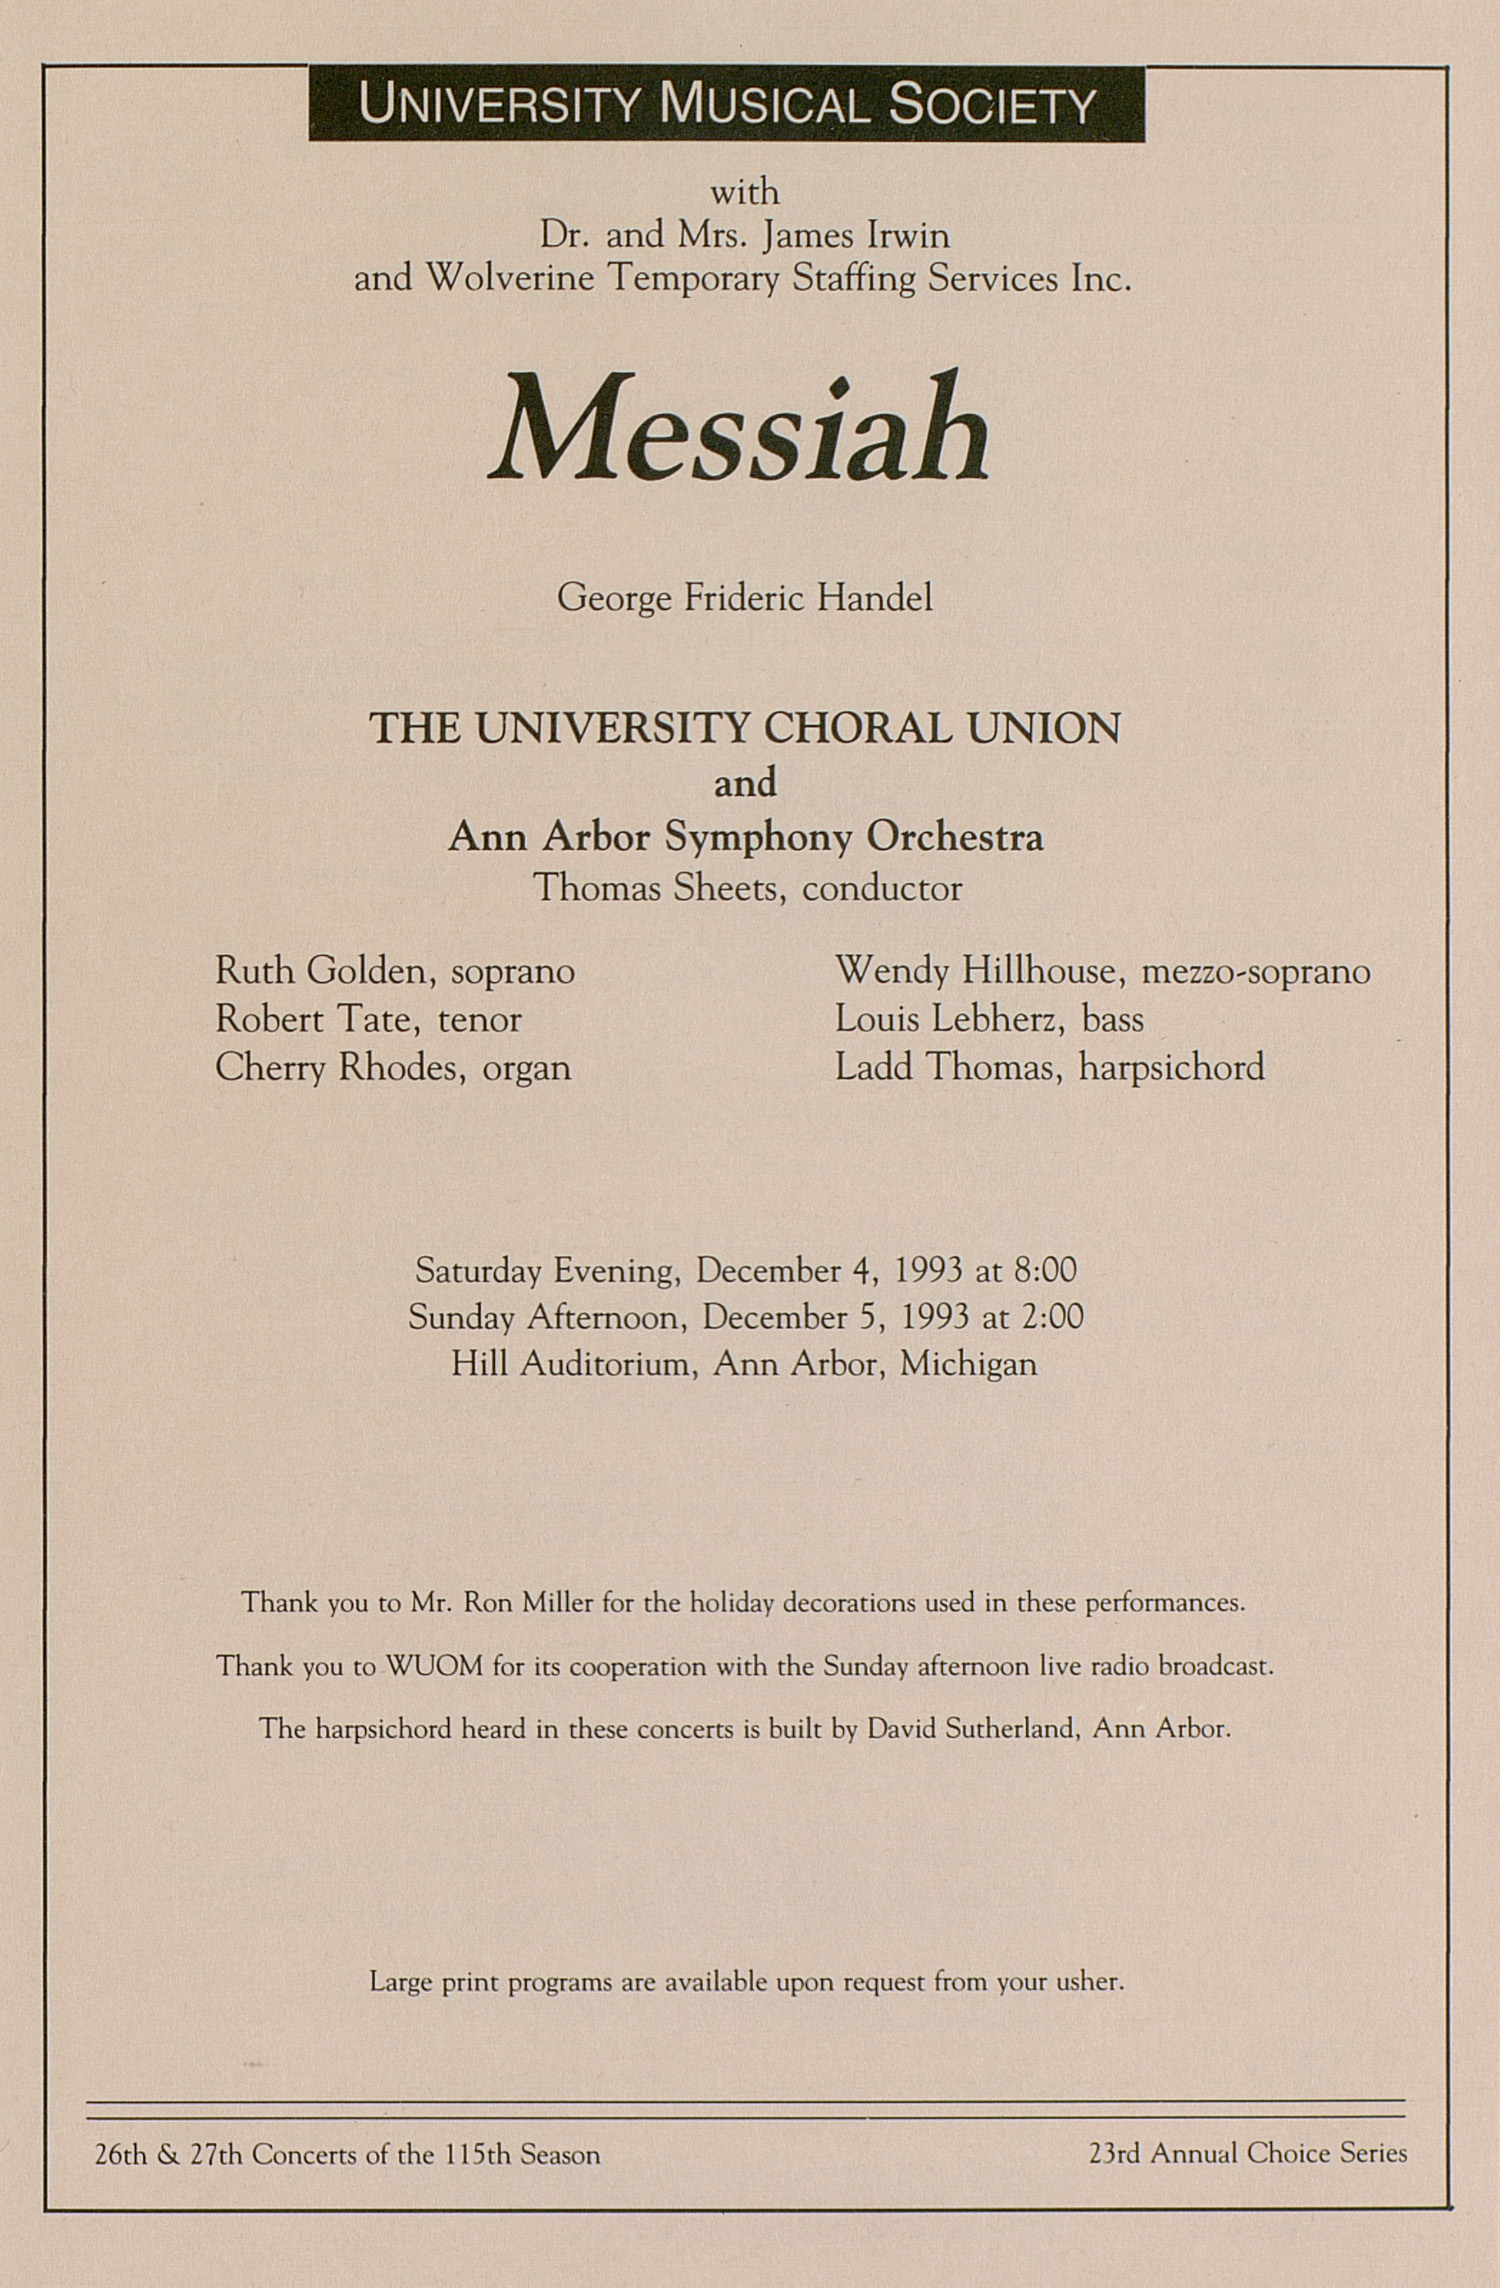 UMS Concert Program, December 4-5, 1993: Messiah -- George Frideric Handel image